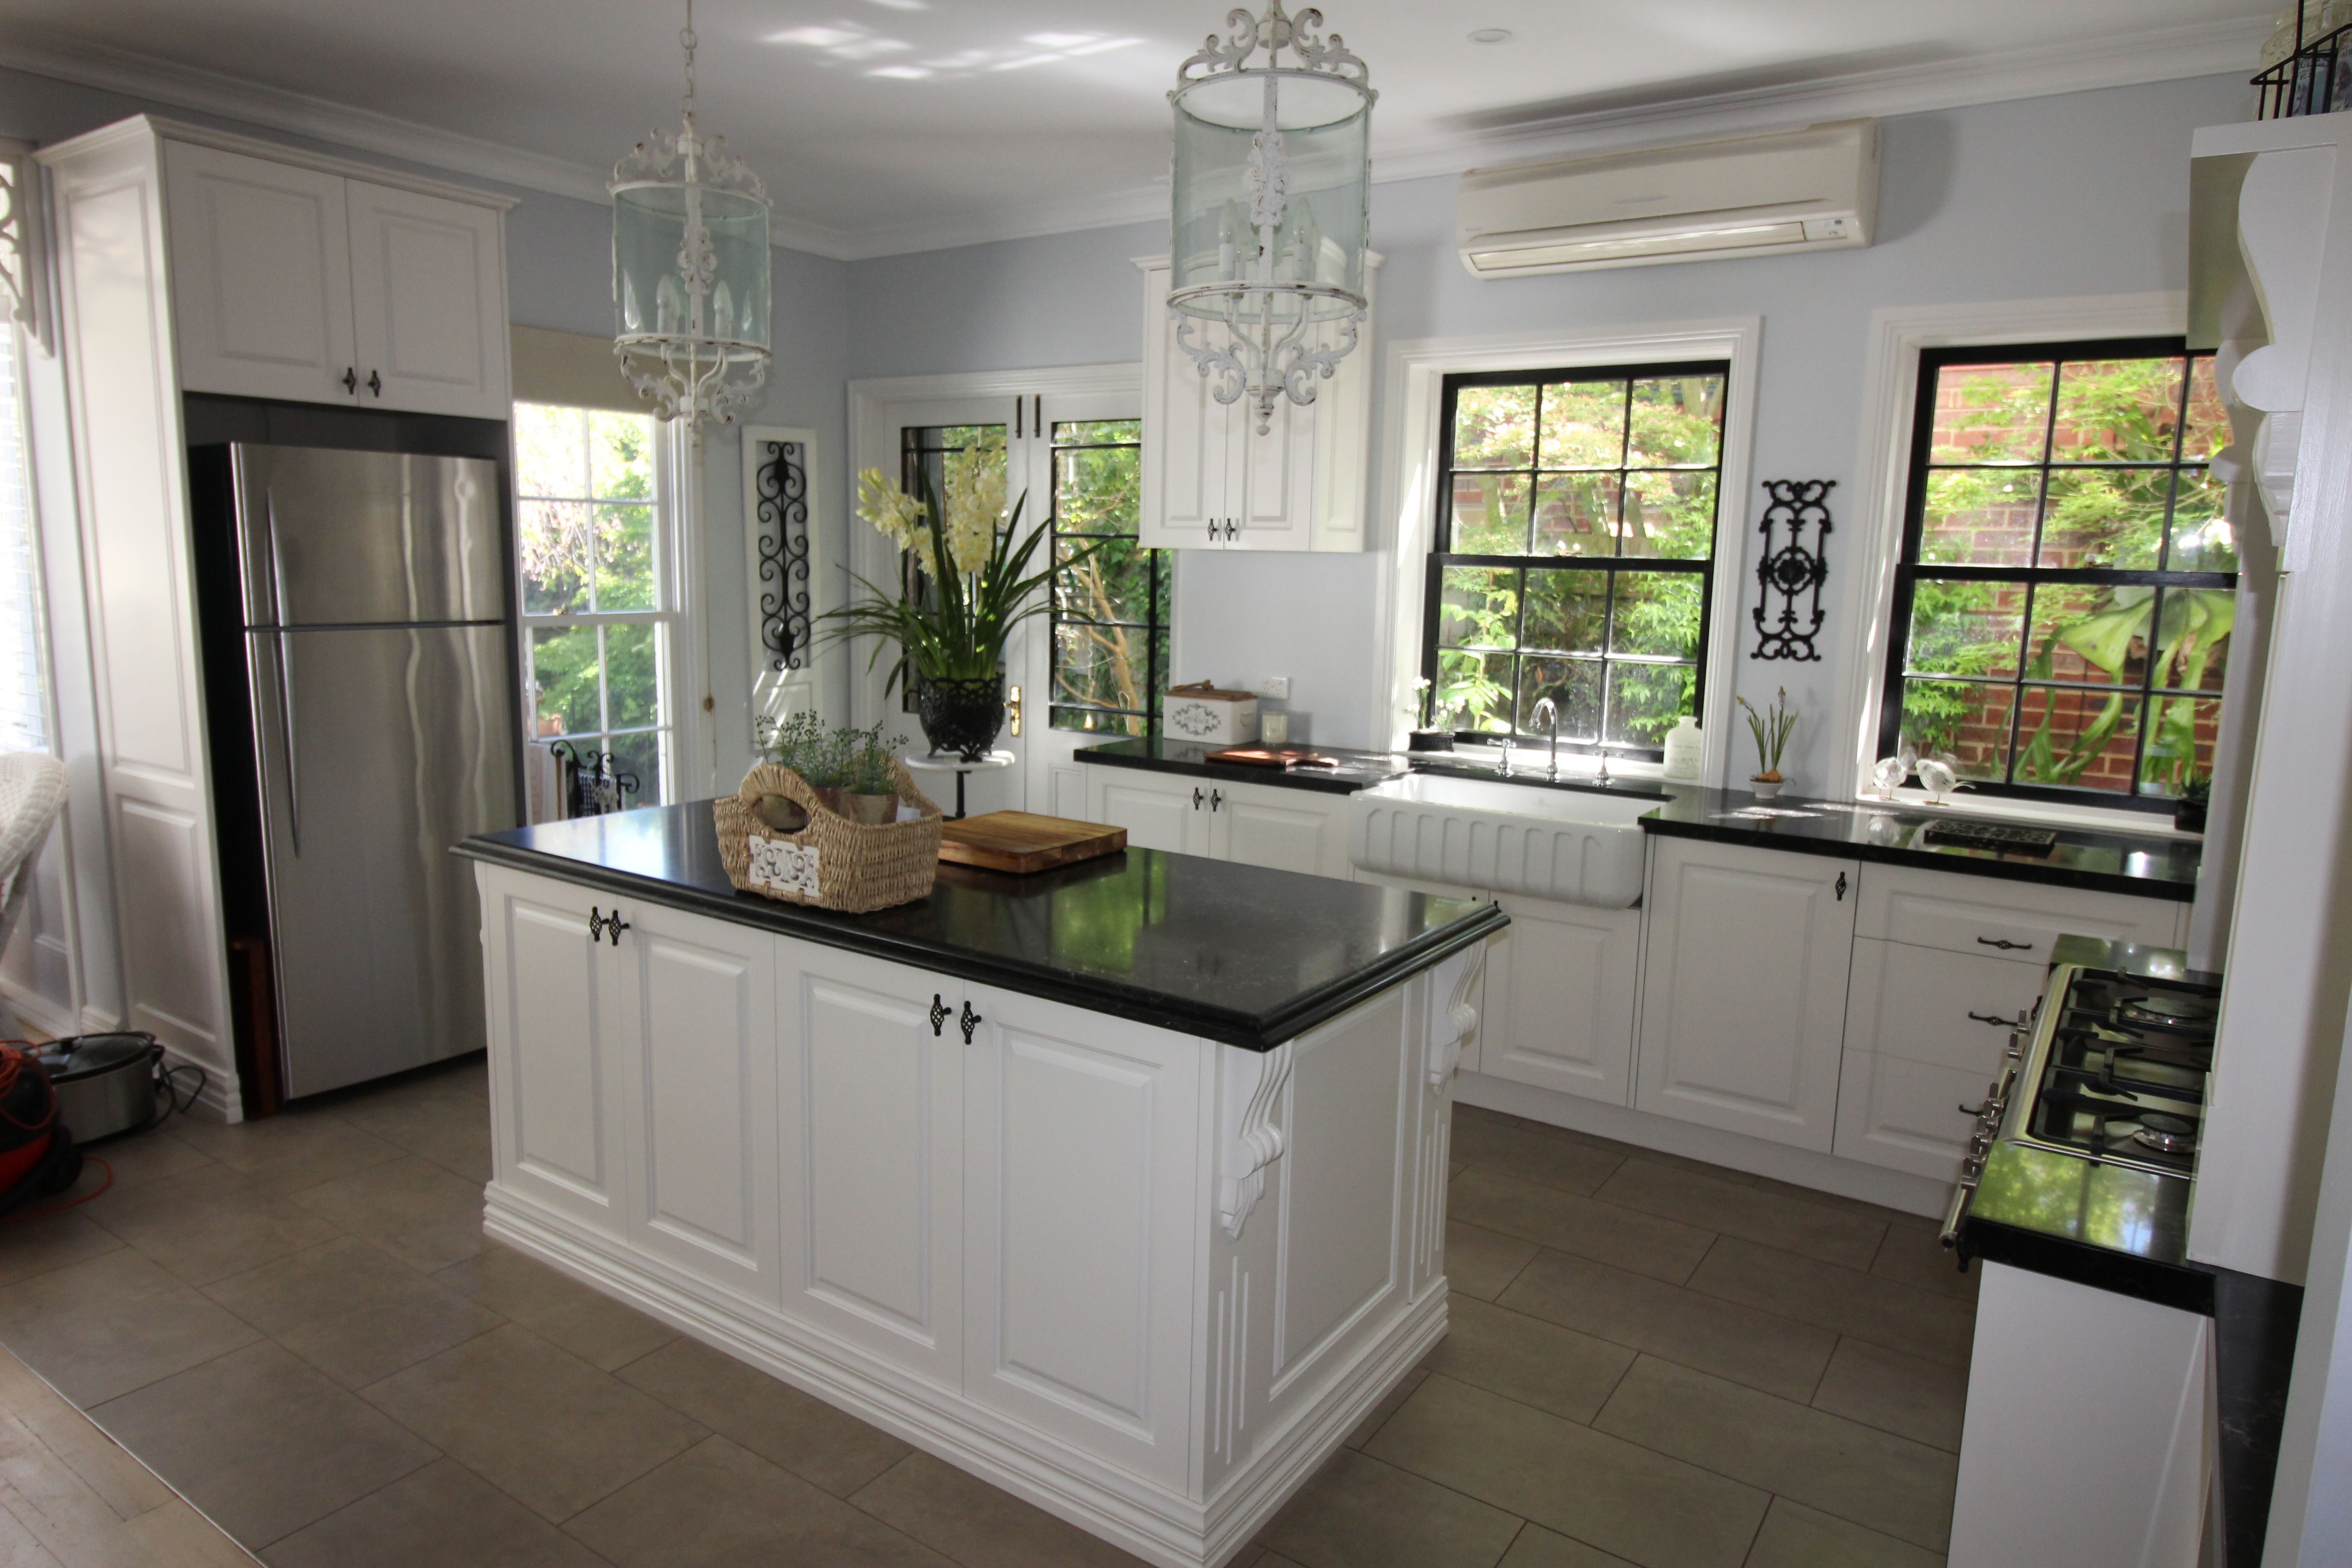 Classic French Provincial Style Kitchen From Kds Kitchens